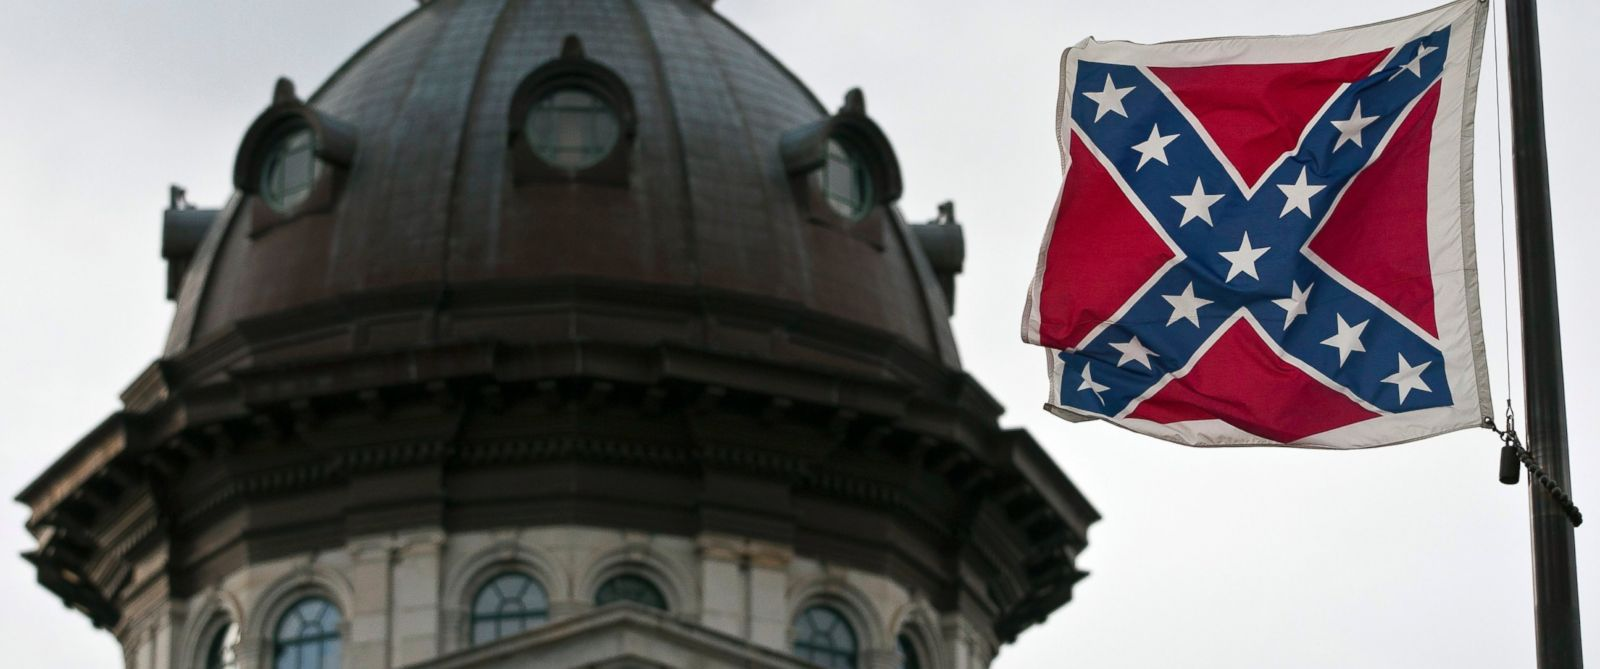 PHOTO: A Confederate flag flies outside the South Carolina State House in Columbia, South Carolina January 17, 2012.